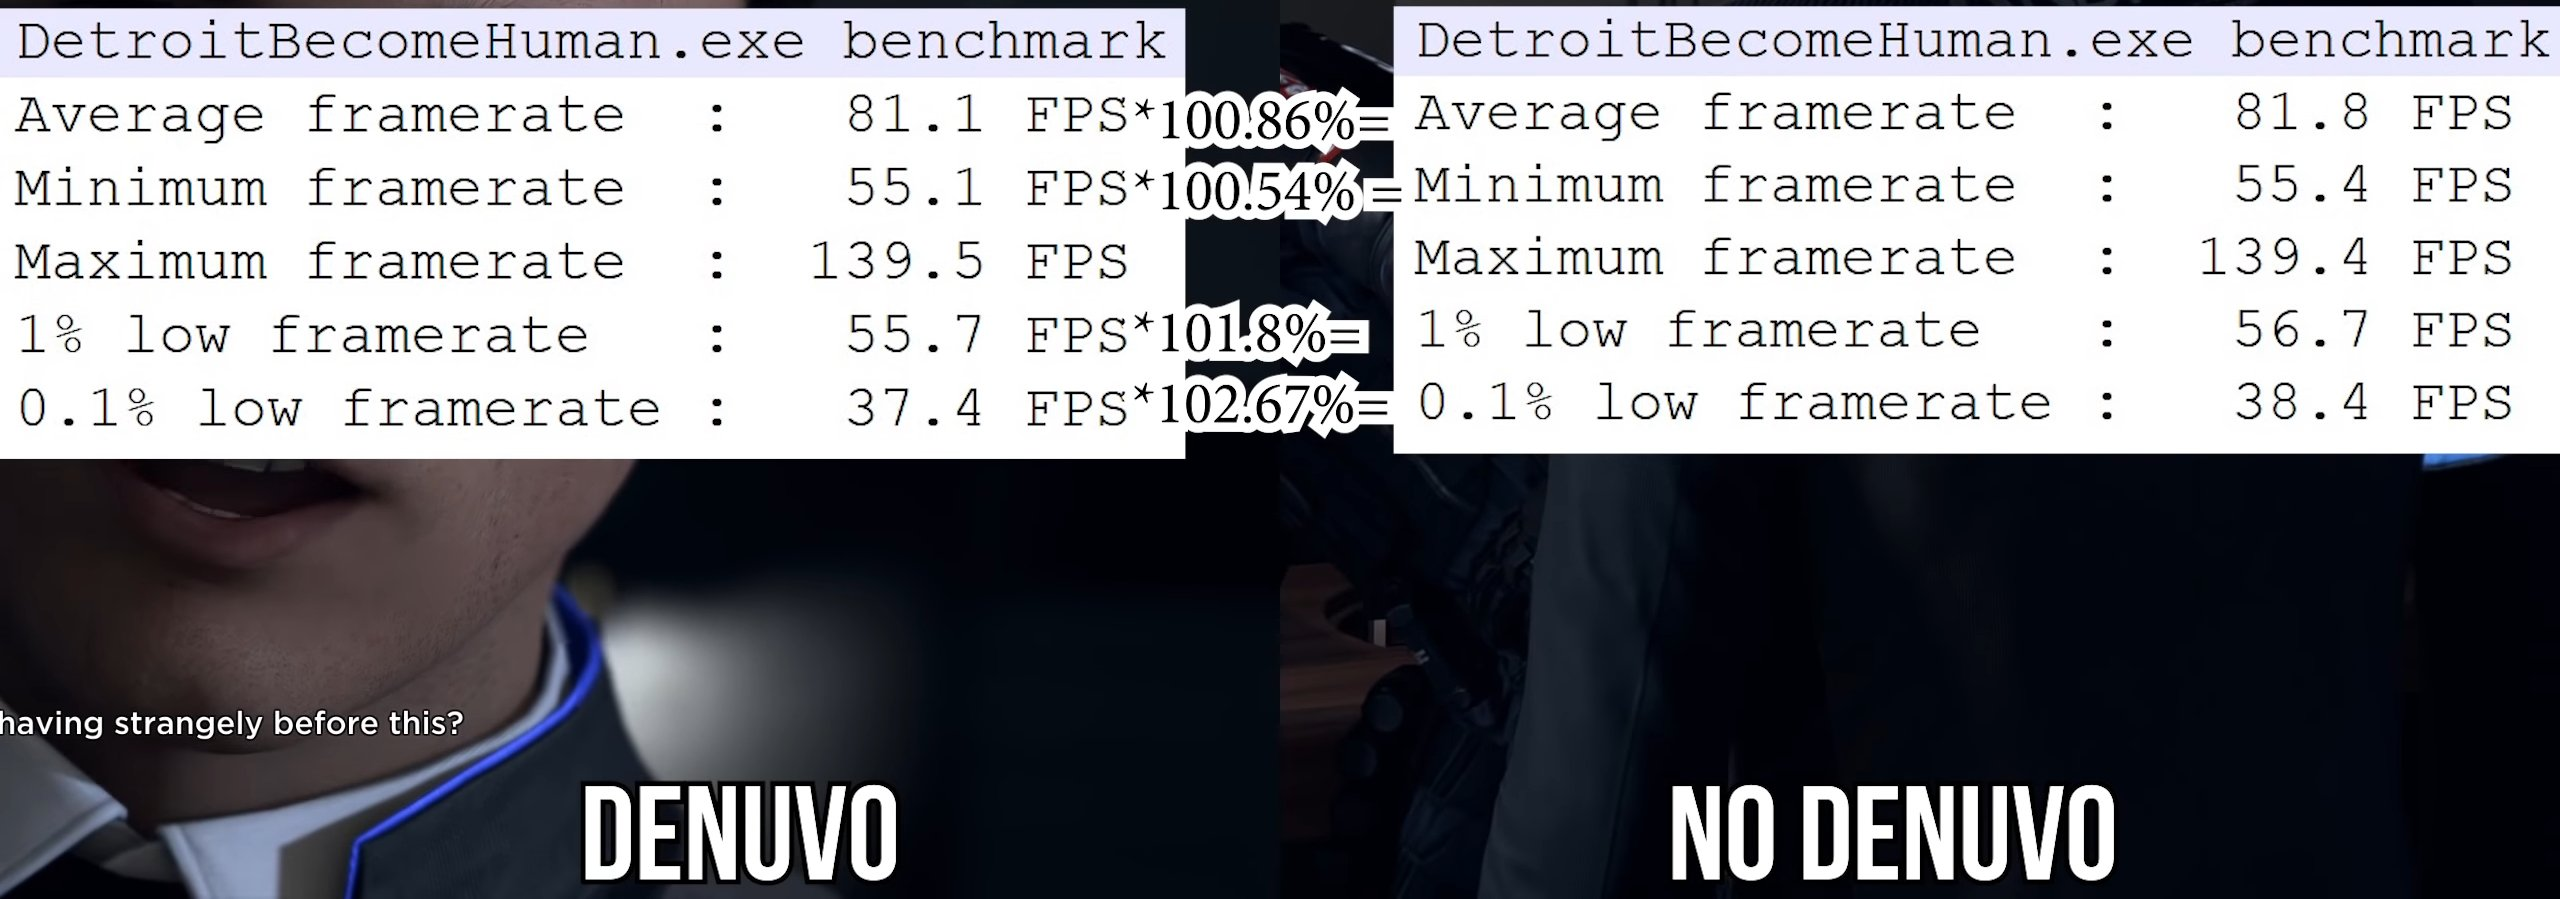 125437-Did%20Denuvo%20slow%20performance